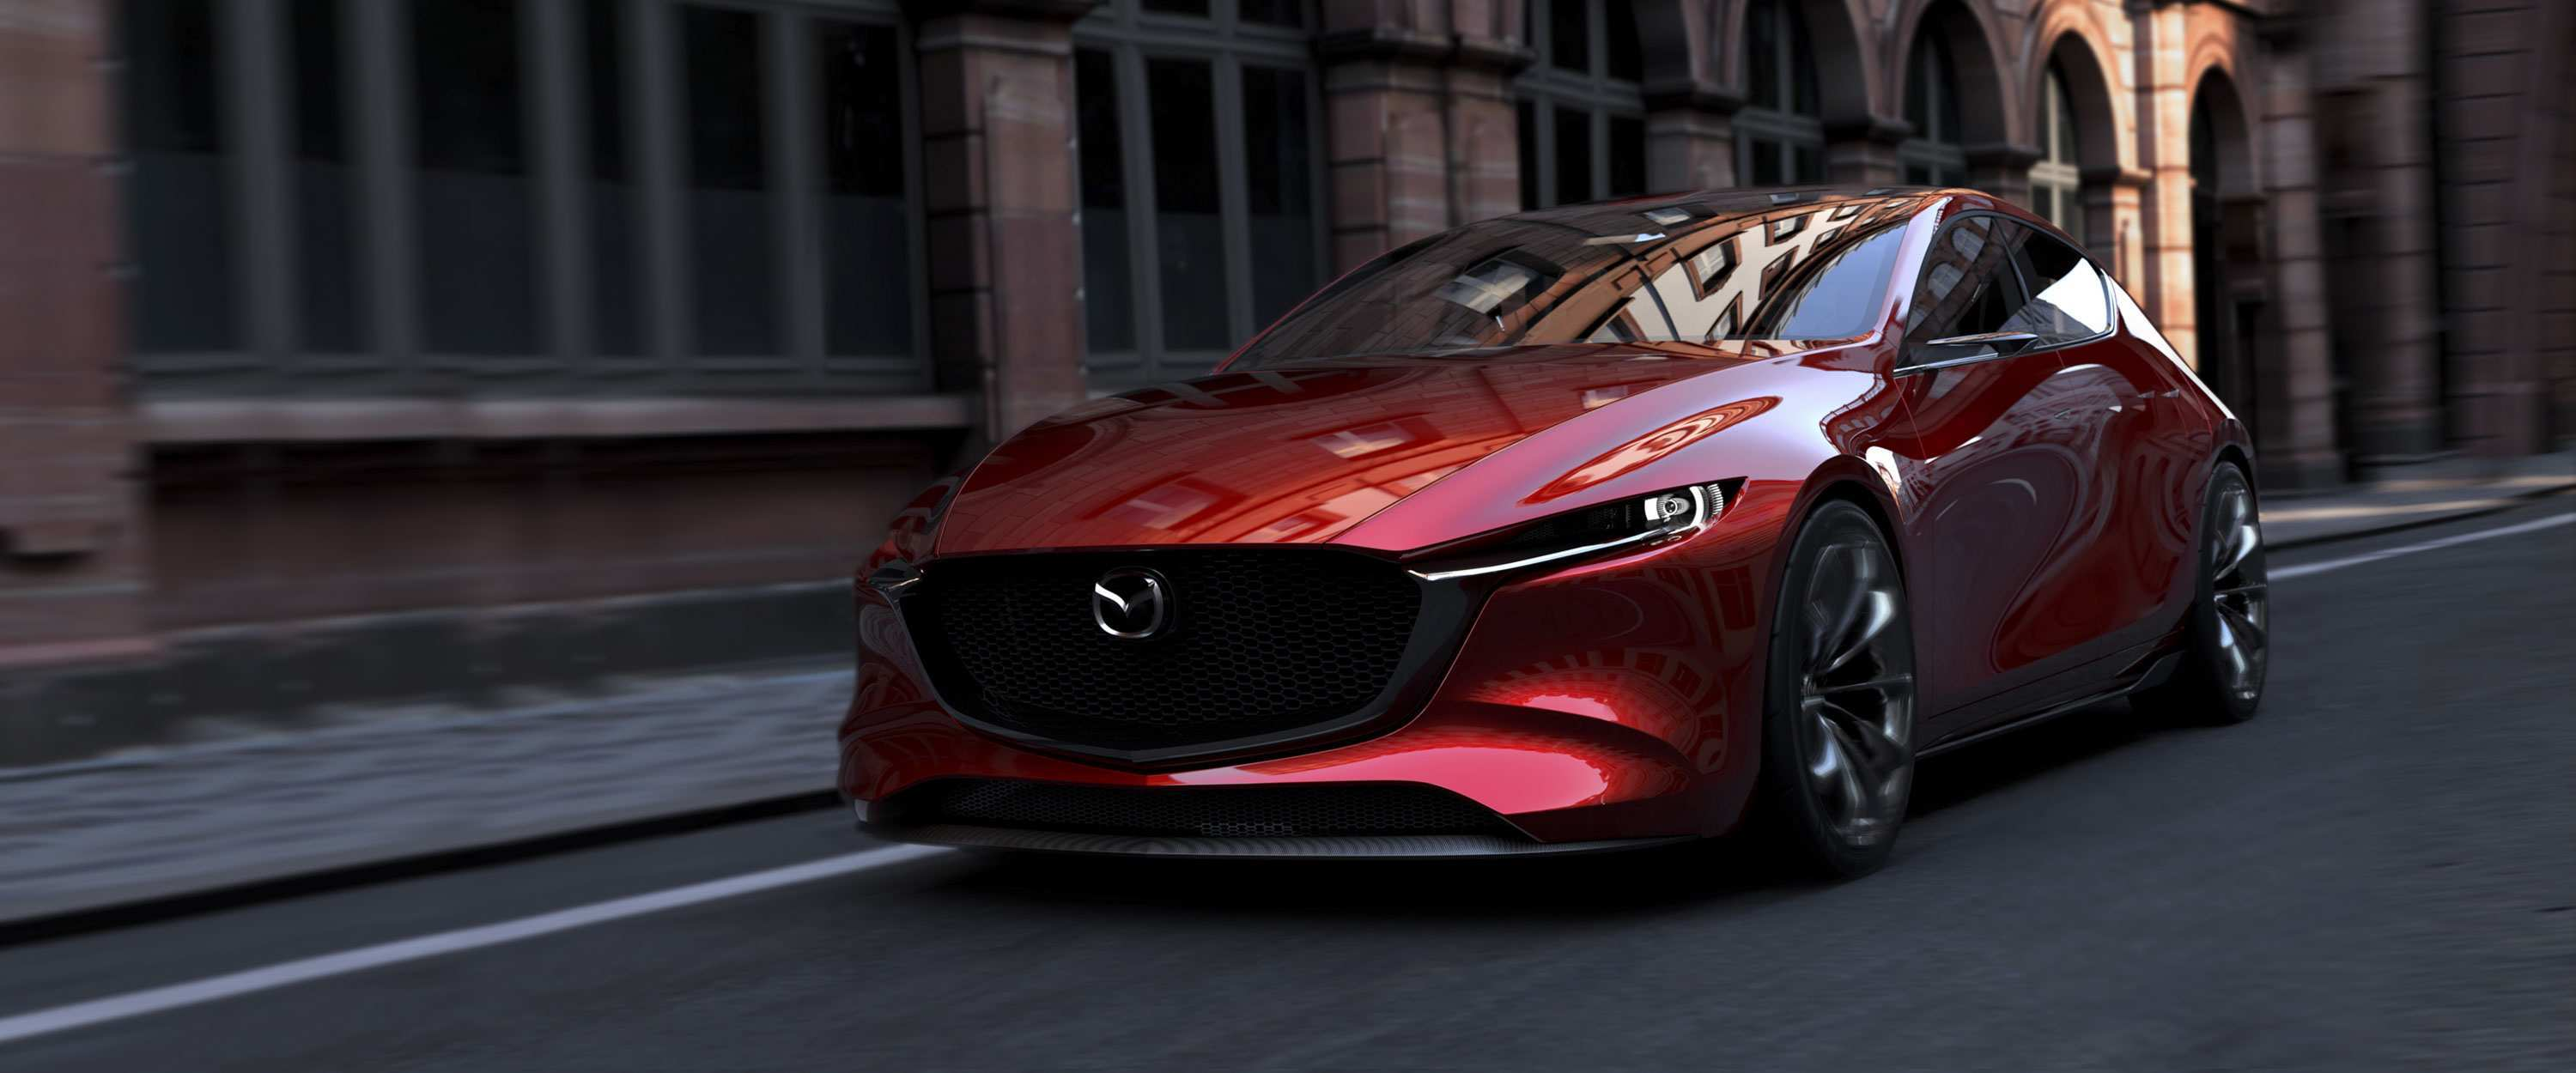 40 Great 2020 Mazda 6 Awd Wallpaper for 2020 Mazda 6 Awd